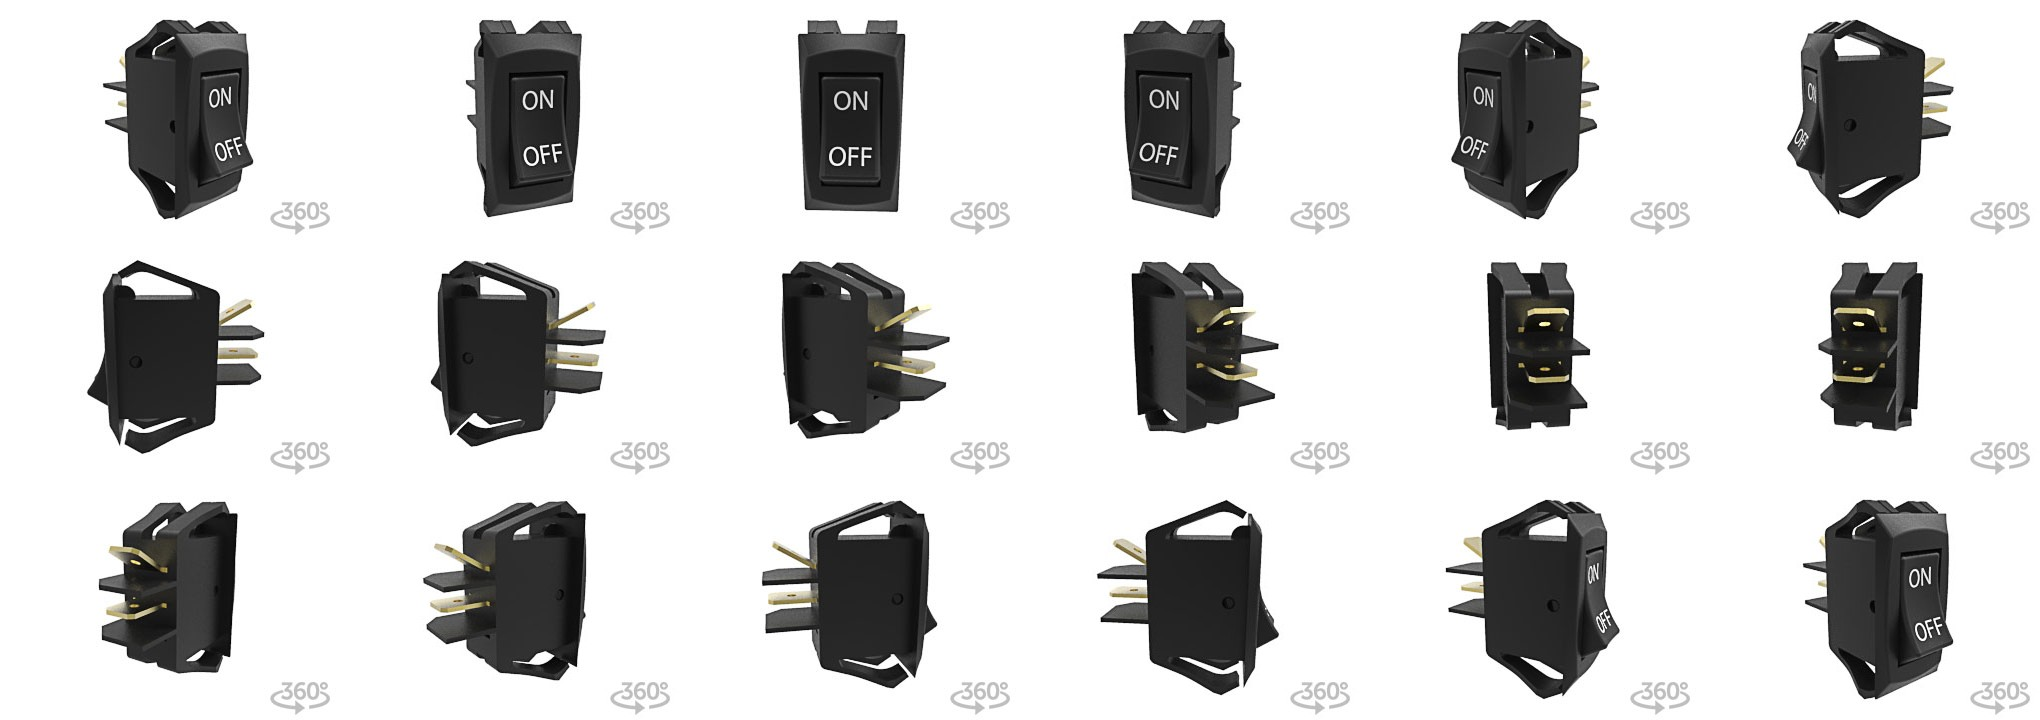 R_340x240_18_3D r series 1 pole, single or double throw carlingswitch rocker switch  at gsmx.co